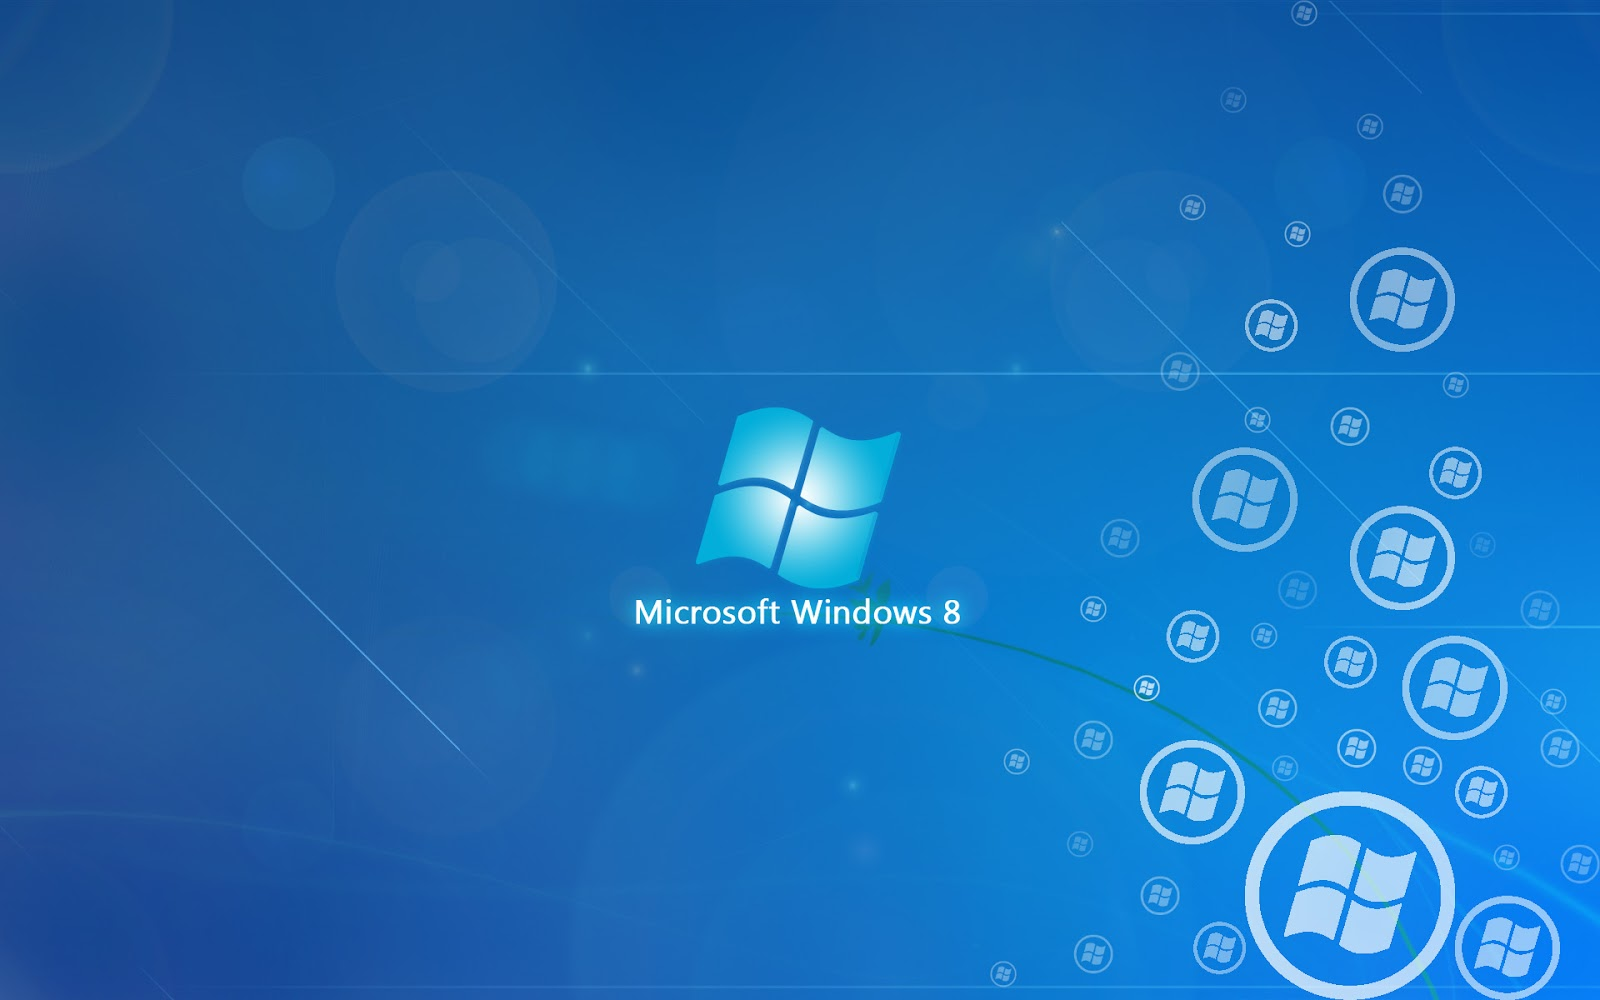 Windows 8 Blue And Light Colored HD Wallpapers